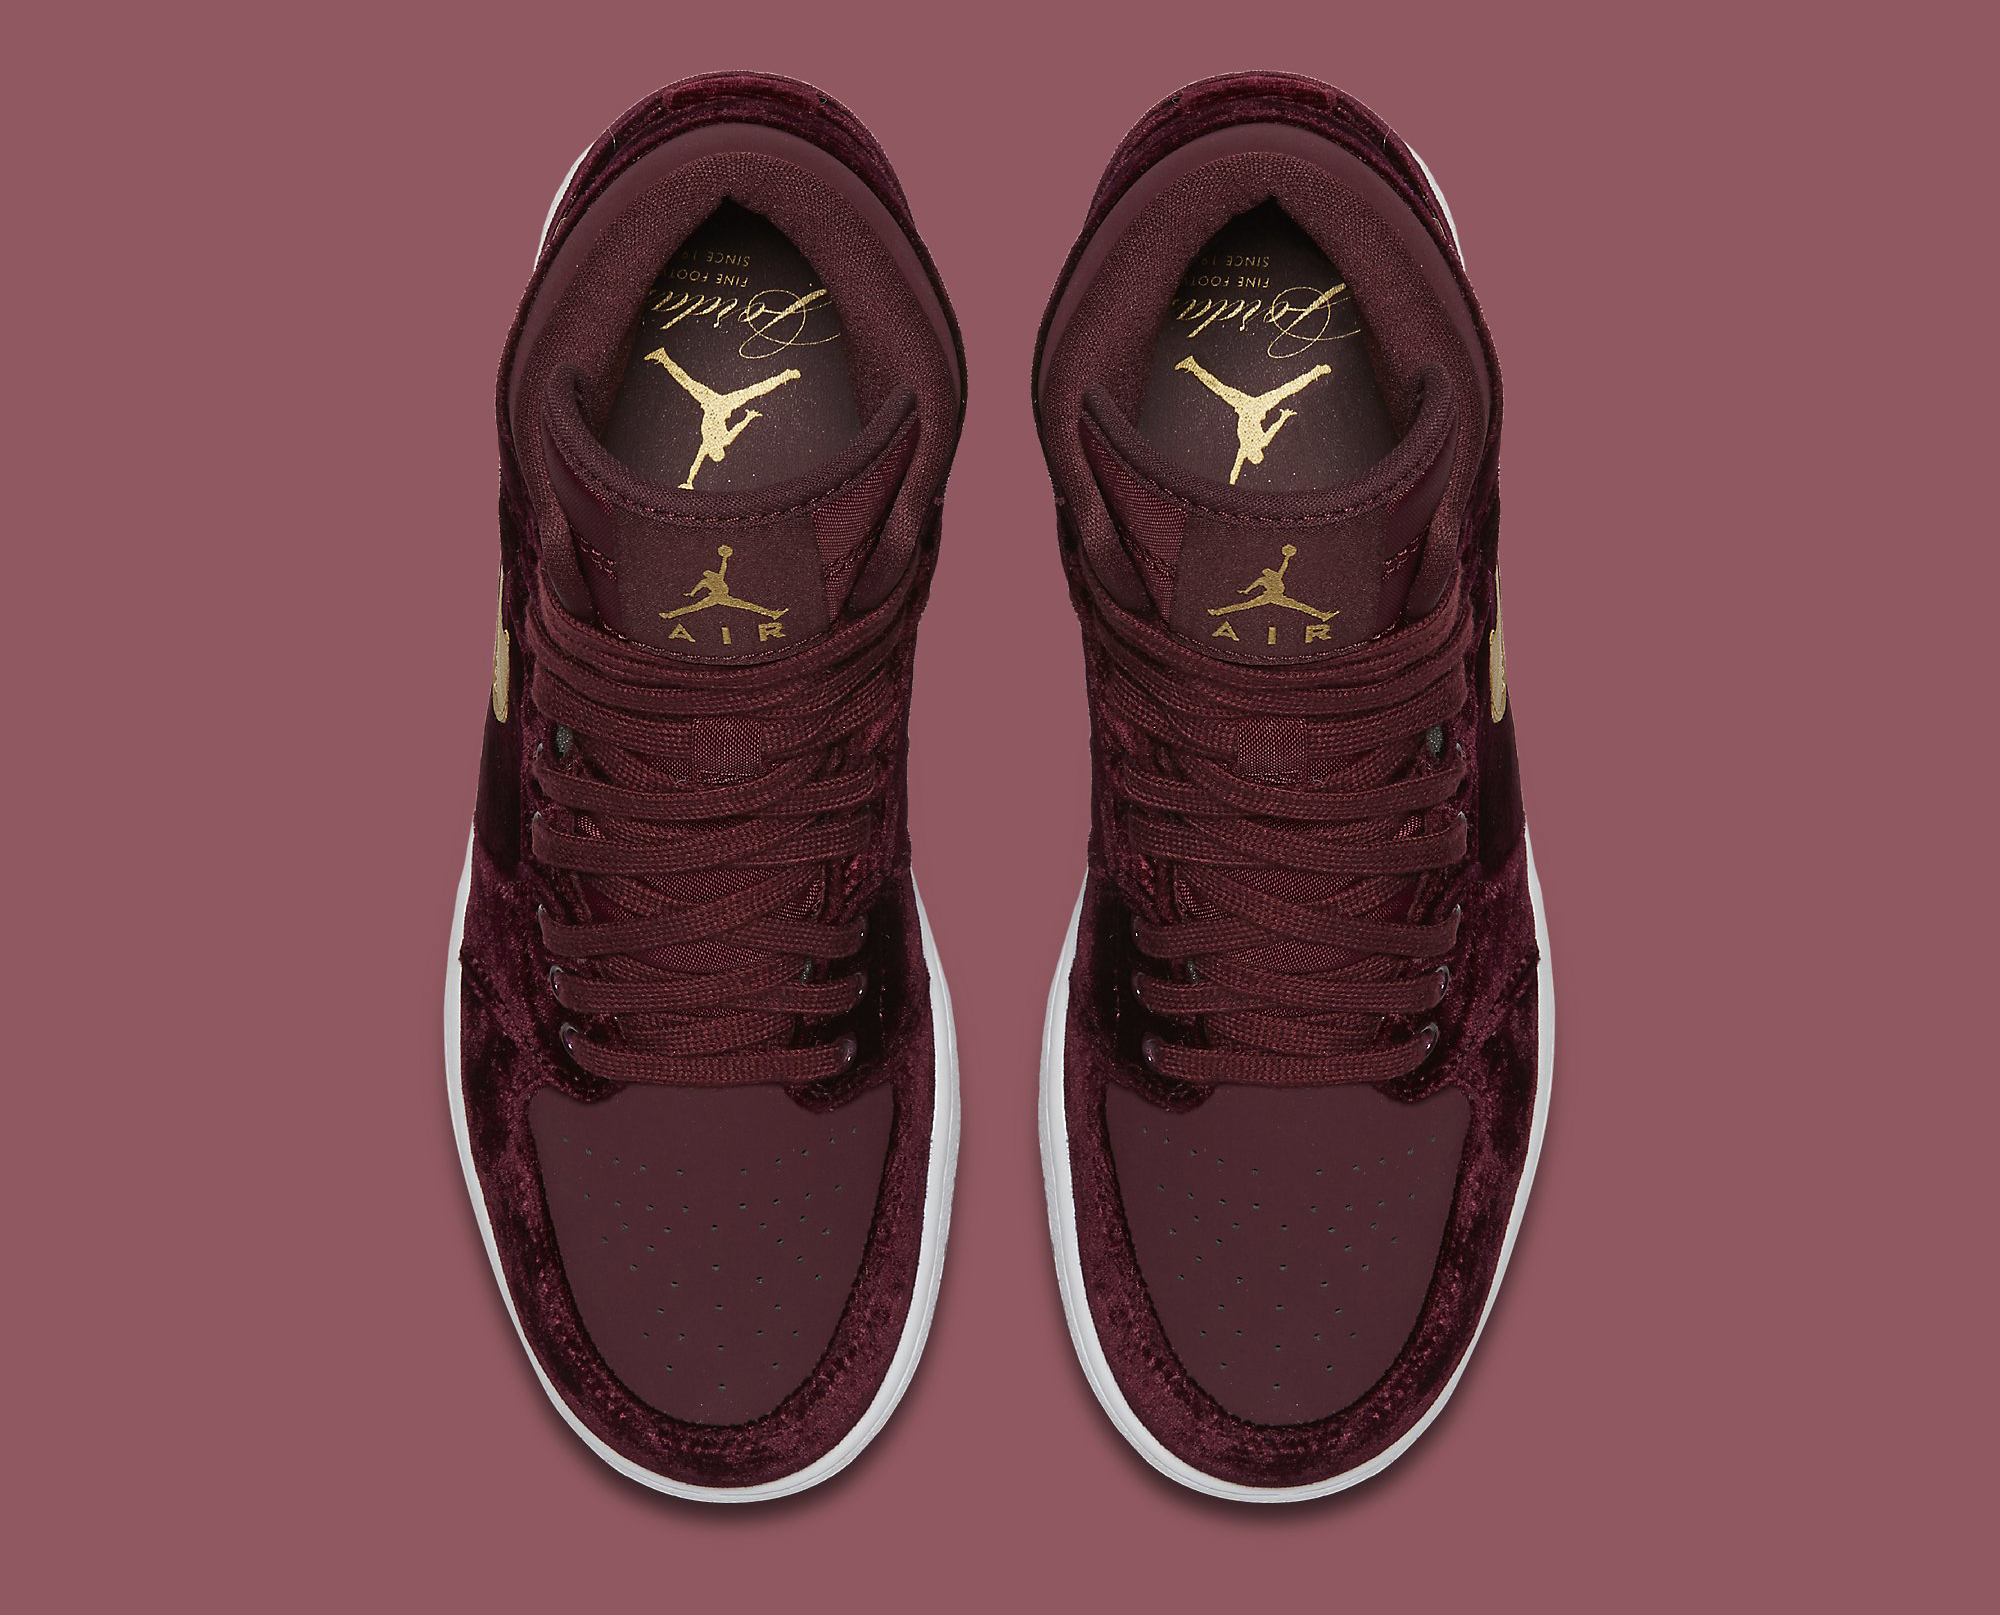 2e308f72af19 Image via Nike Red Velvet Air Jordan 1 Heiress 832596-640 Top